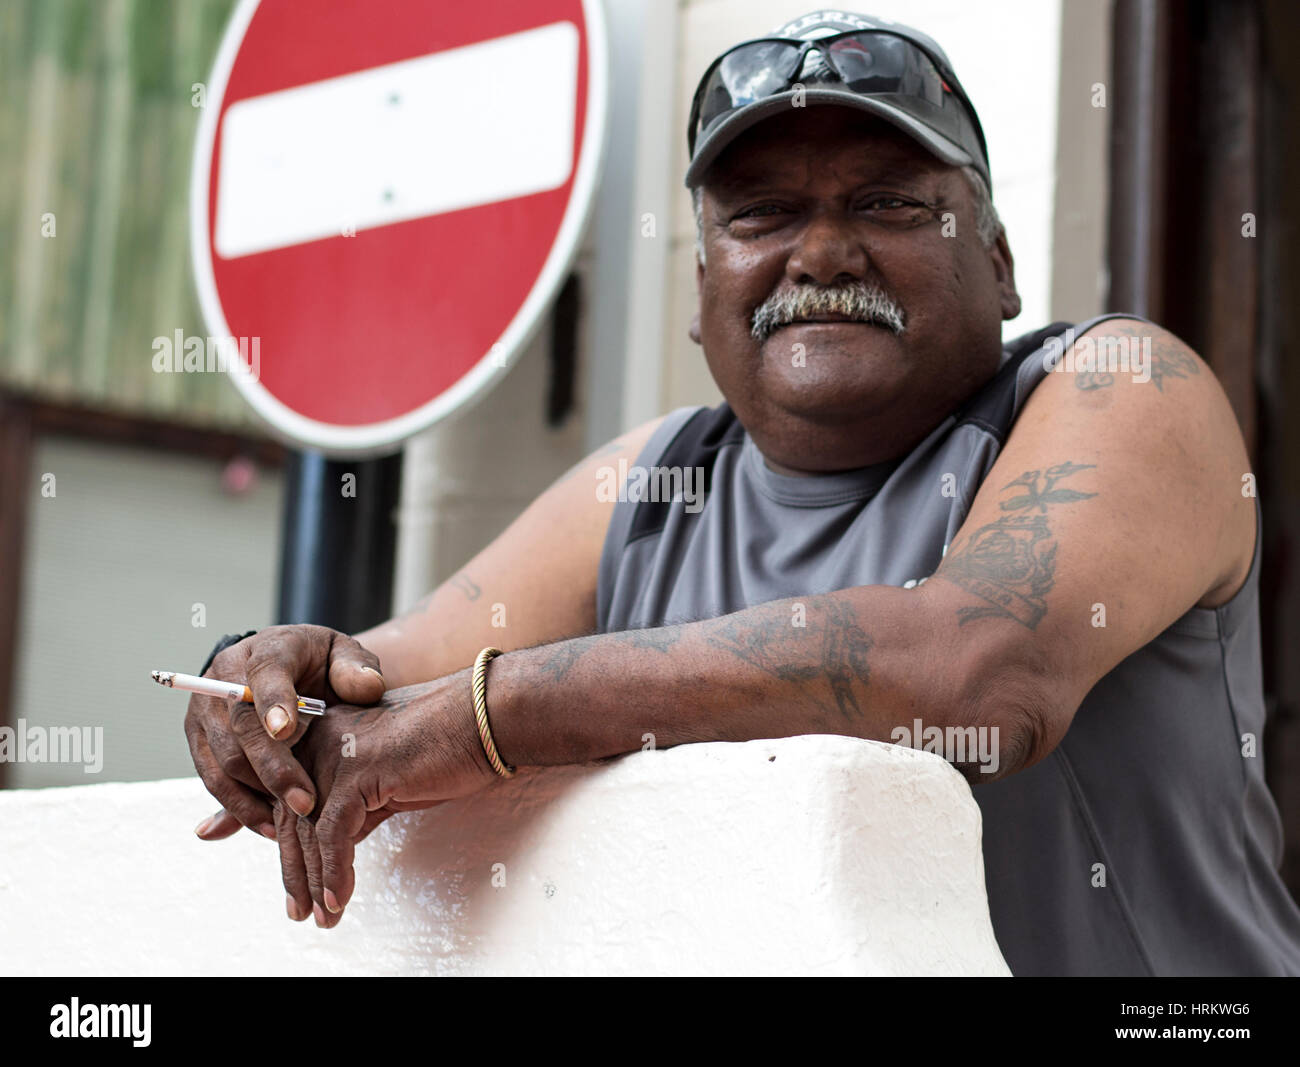 Man with moustache holding a cigarette. A wrong way sign is behind him. - Stock Image